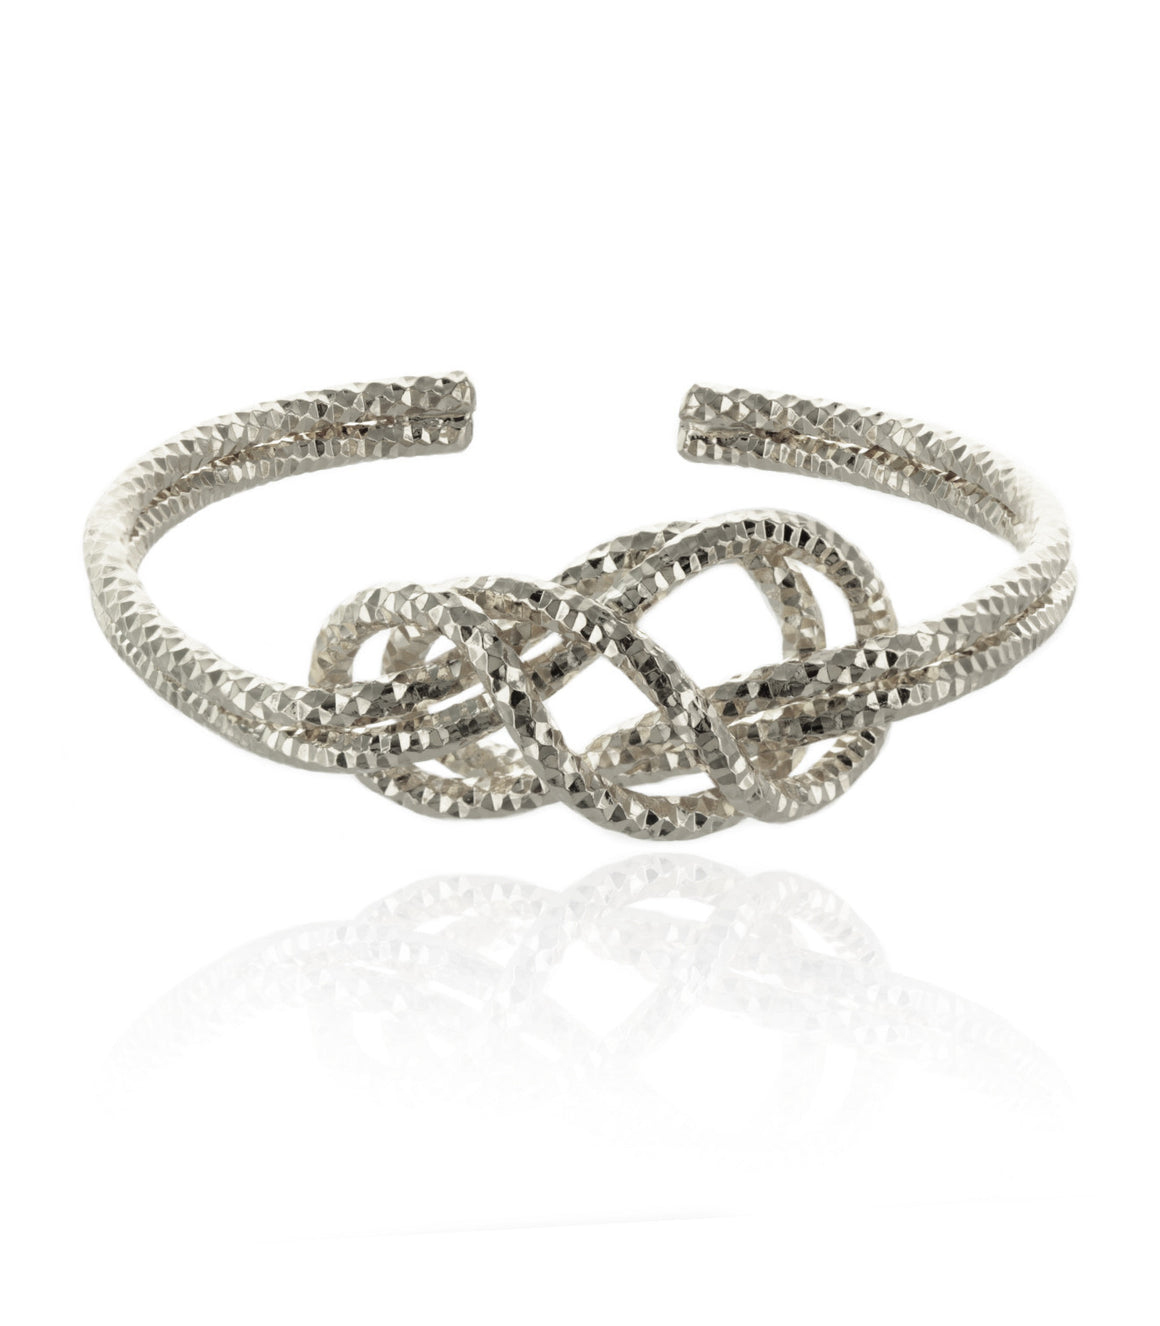 Polished celctic knot Cuff Bracelet